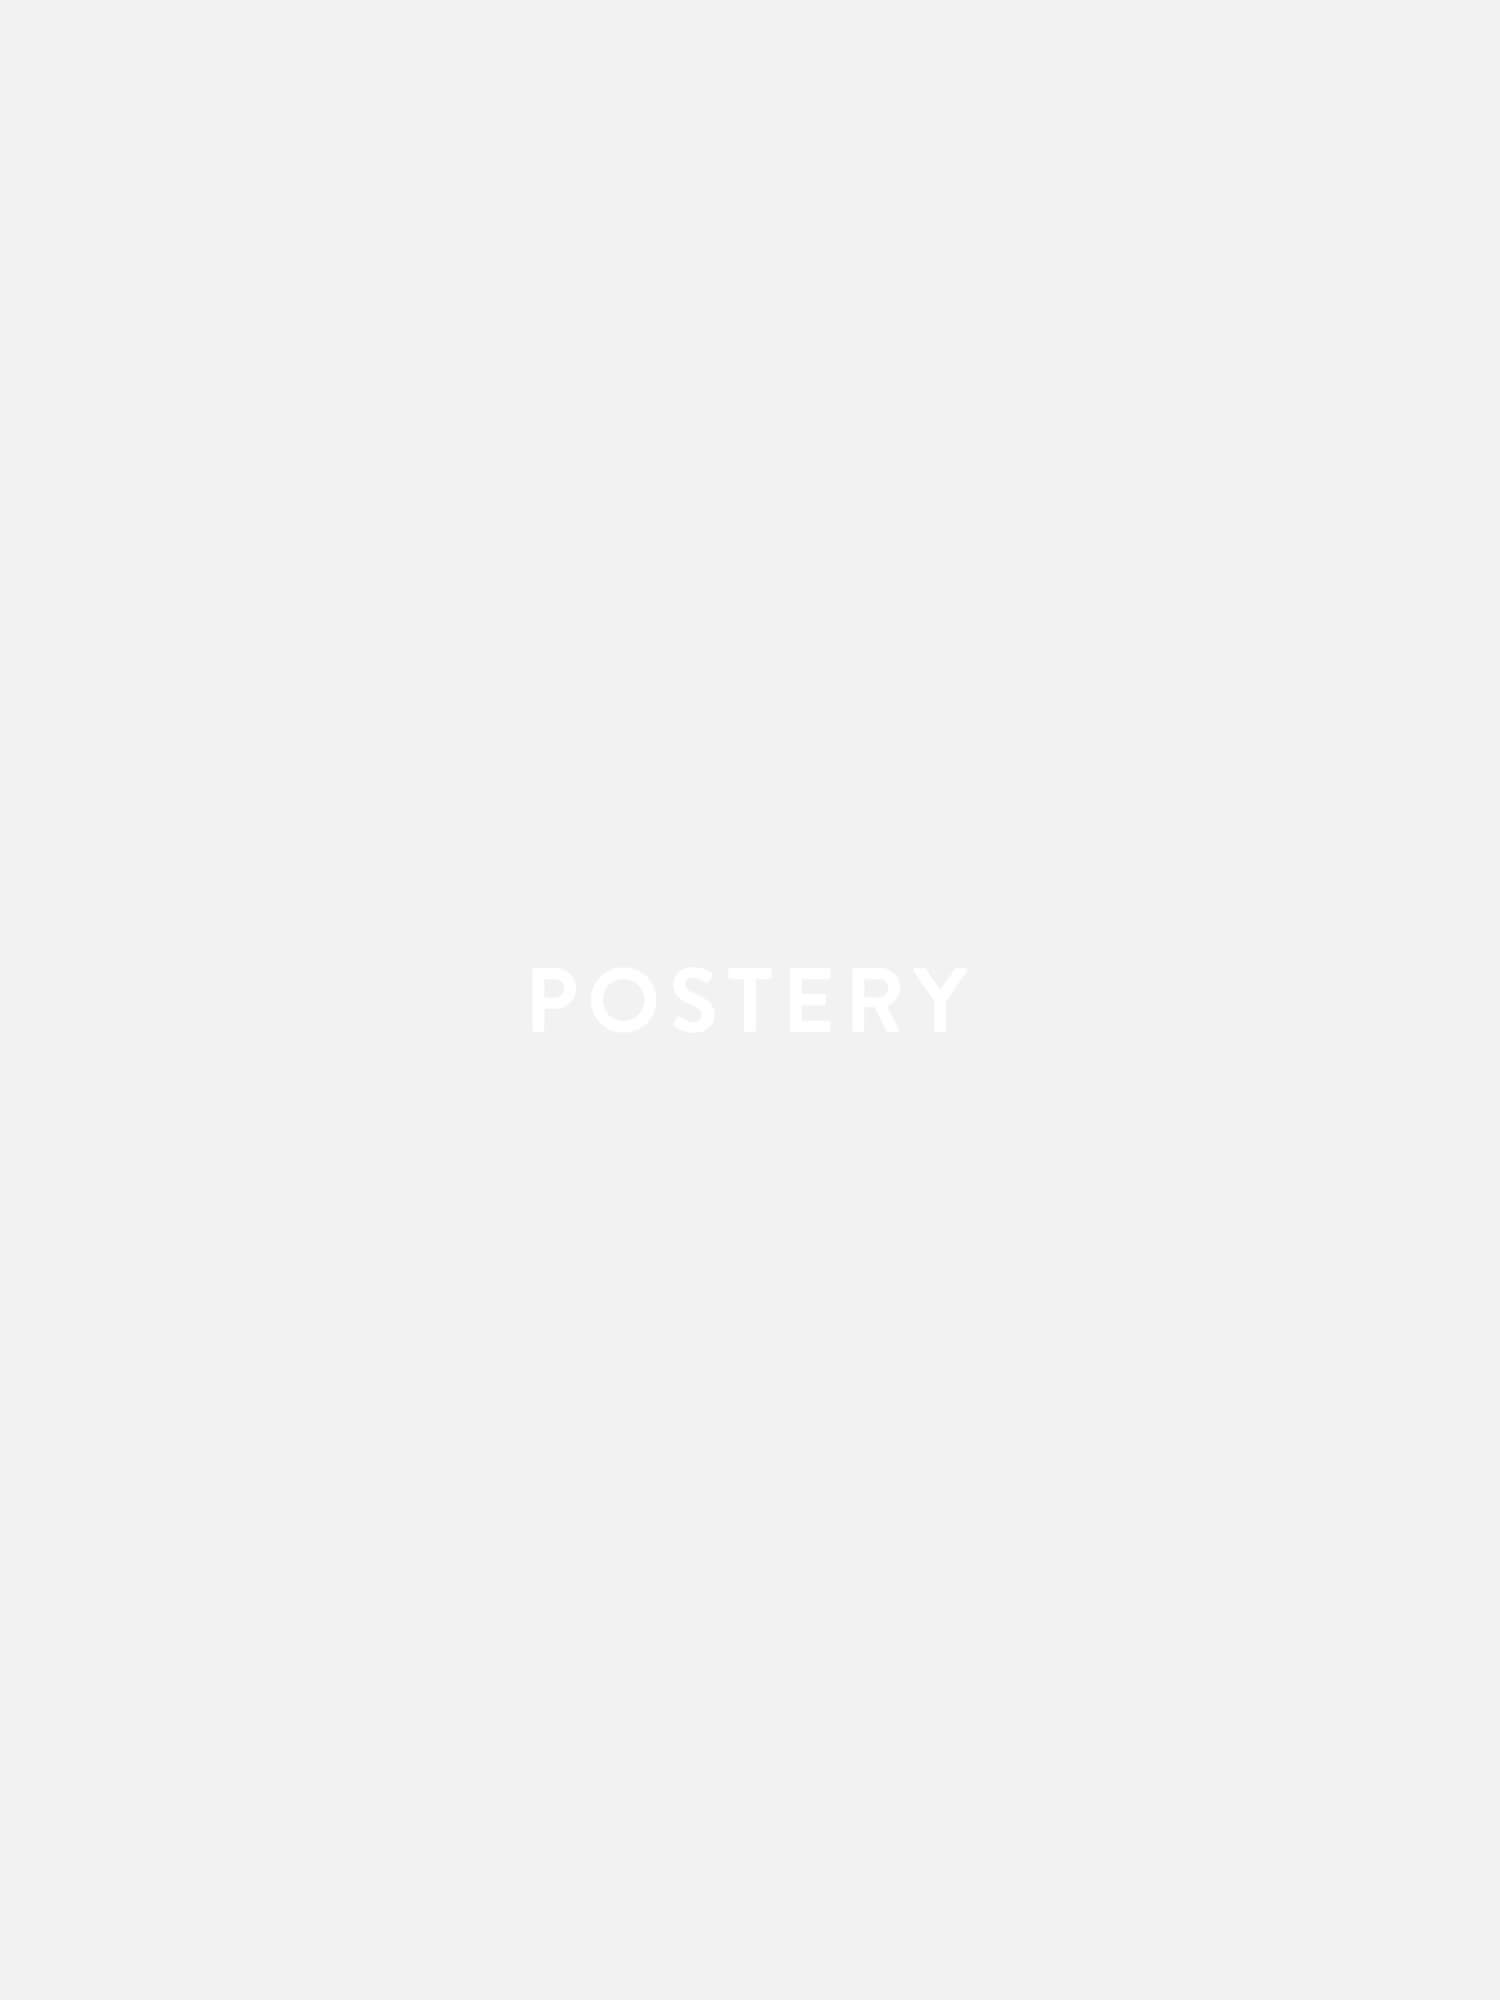 Marrakech Door Poster